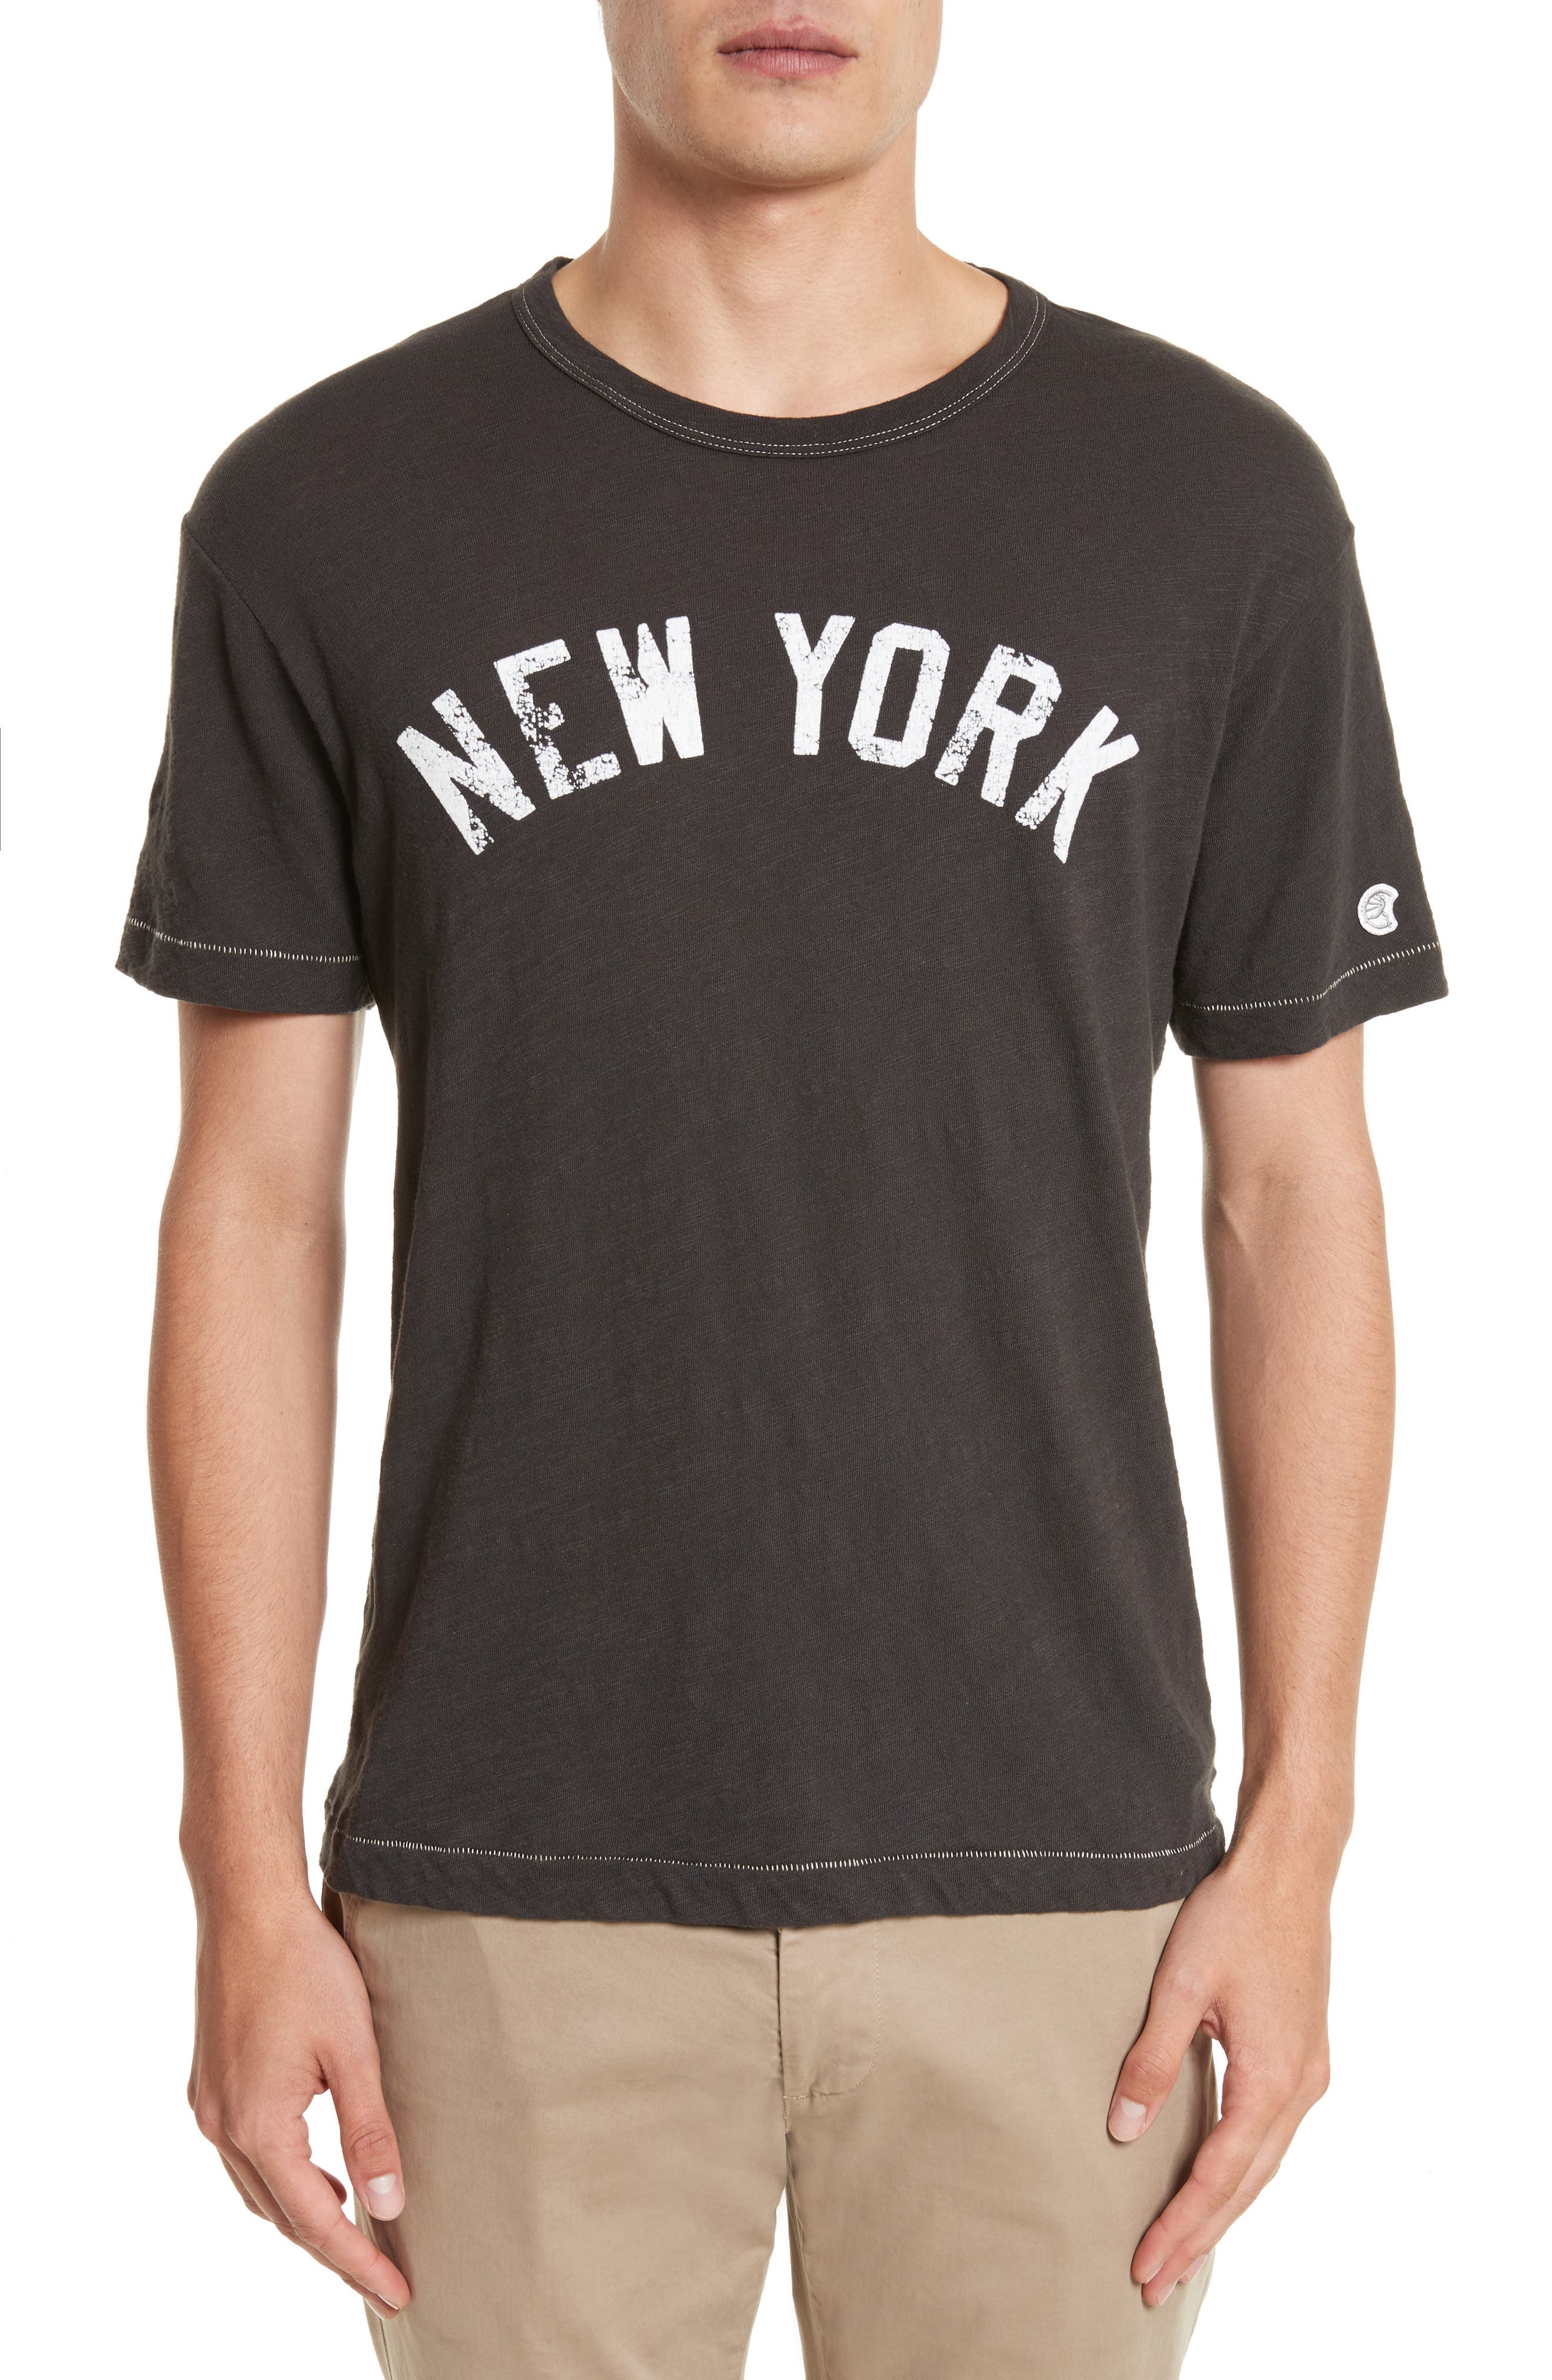 Todd Snyder New York T-Shirt